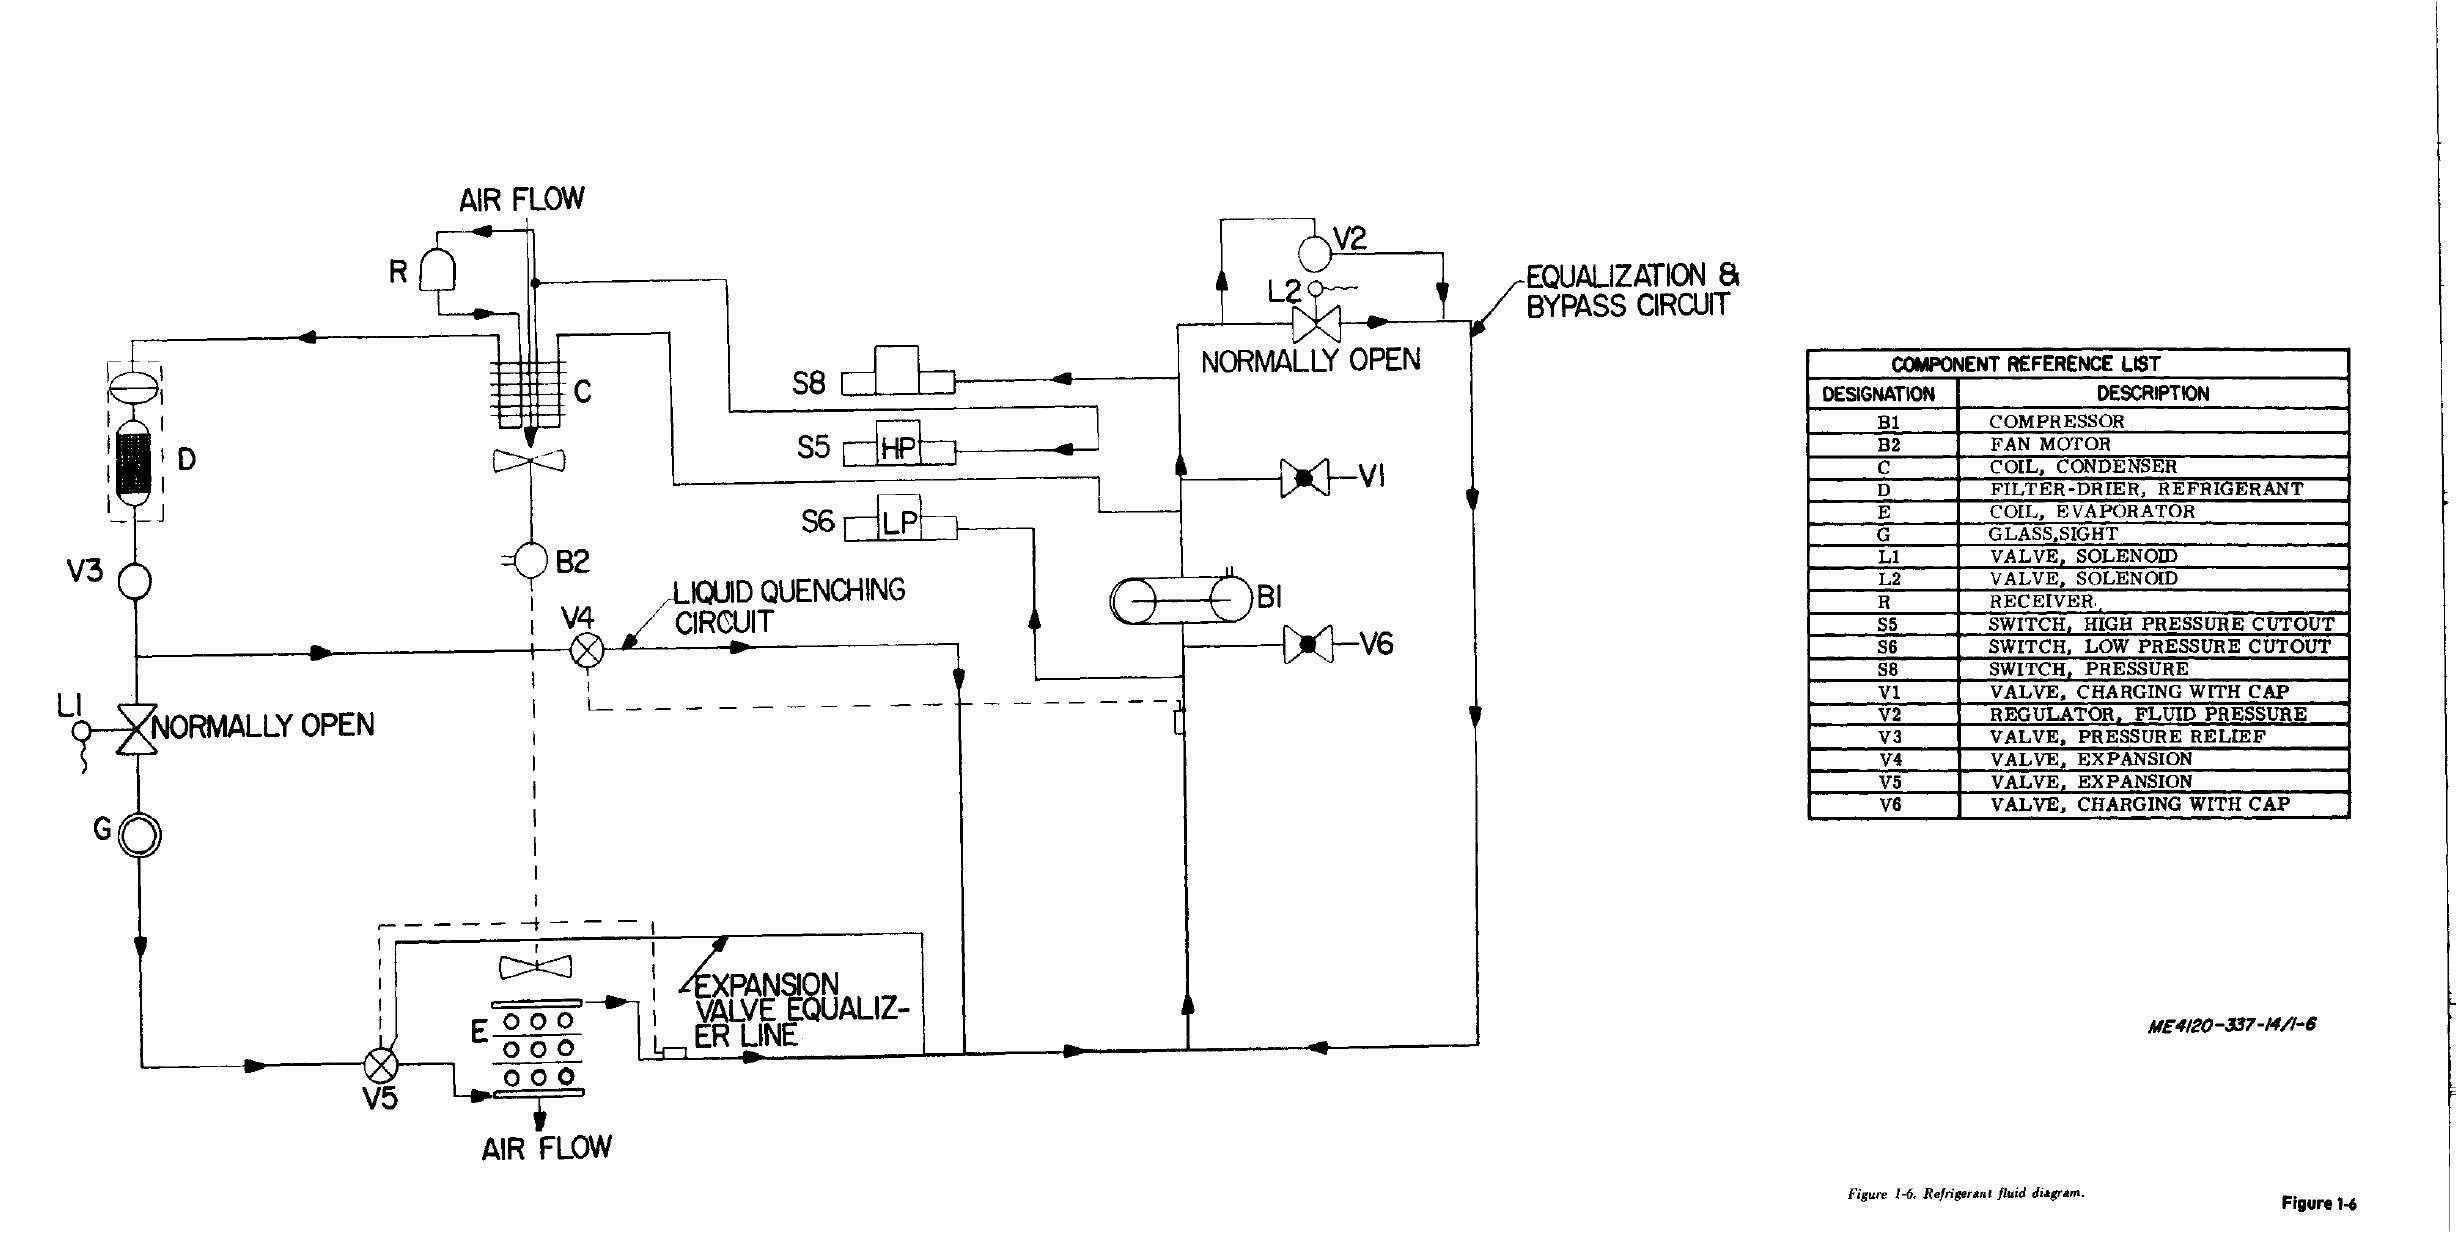 Wiring Diagram Car Air Conditioning Diagram Diagramtemplate Diagramsample